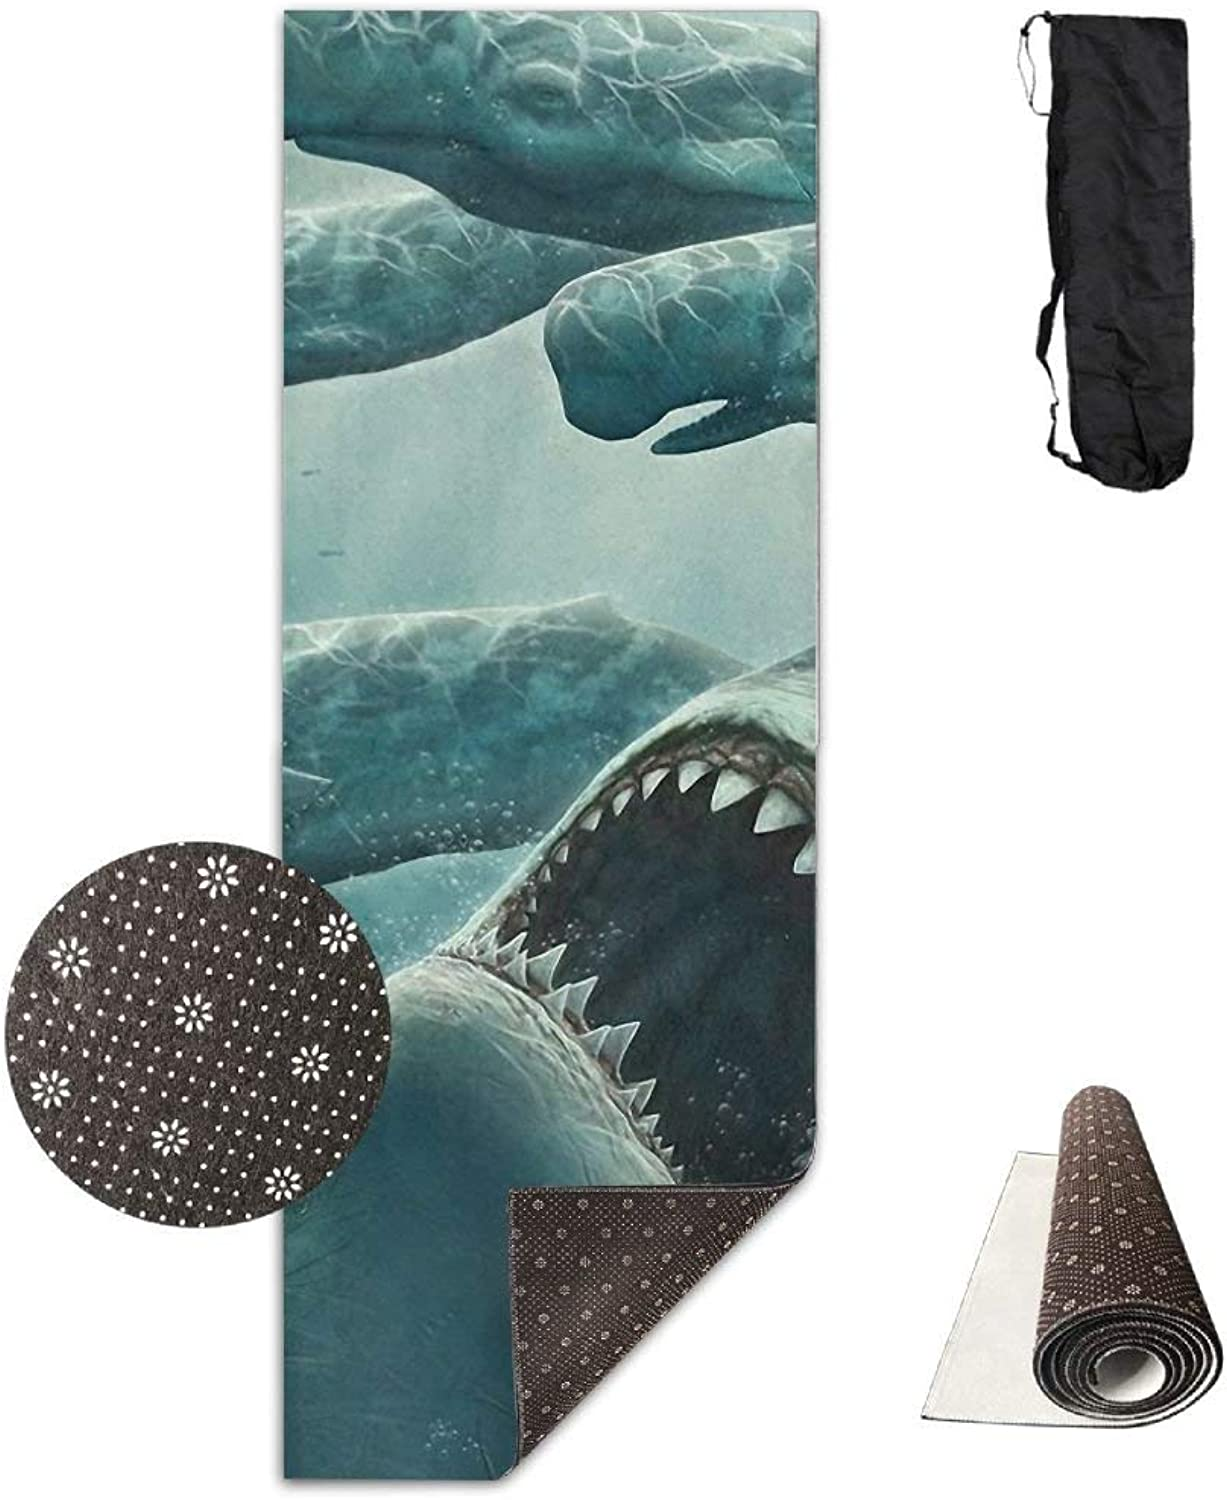 Shark and Whale Sea Creatures Yoga Mat  Advanced Yoga Mat  NonSlip Lining  Easy to Clean  LatexFree  Lightweight and Durable  Long 180 Width 61cm